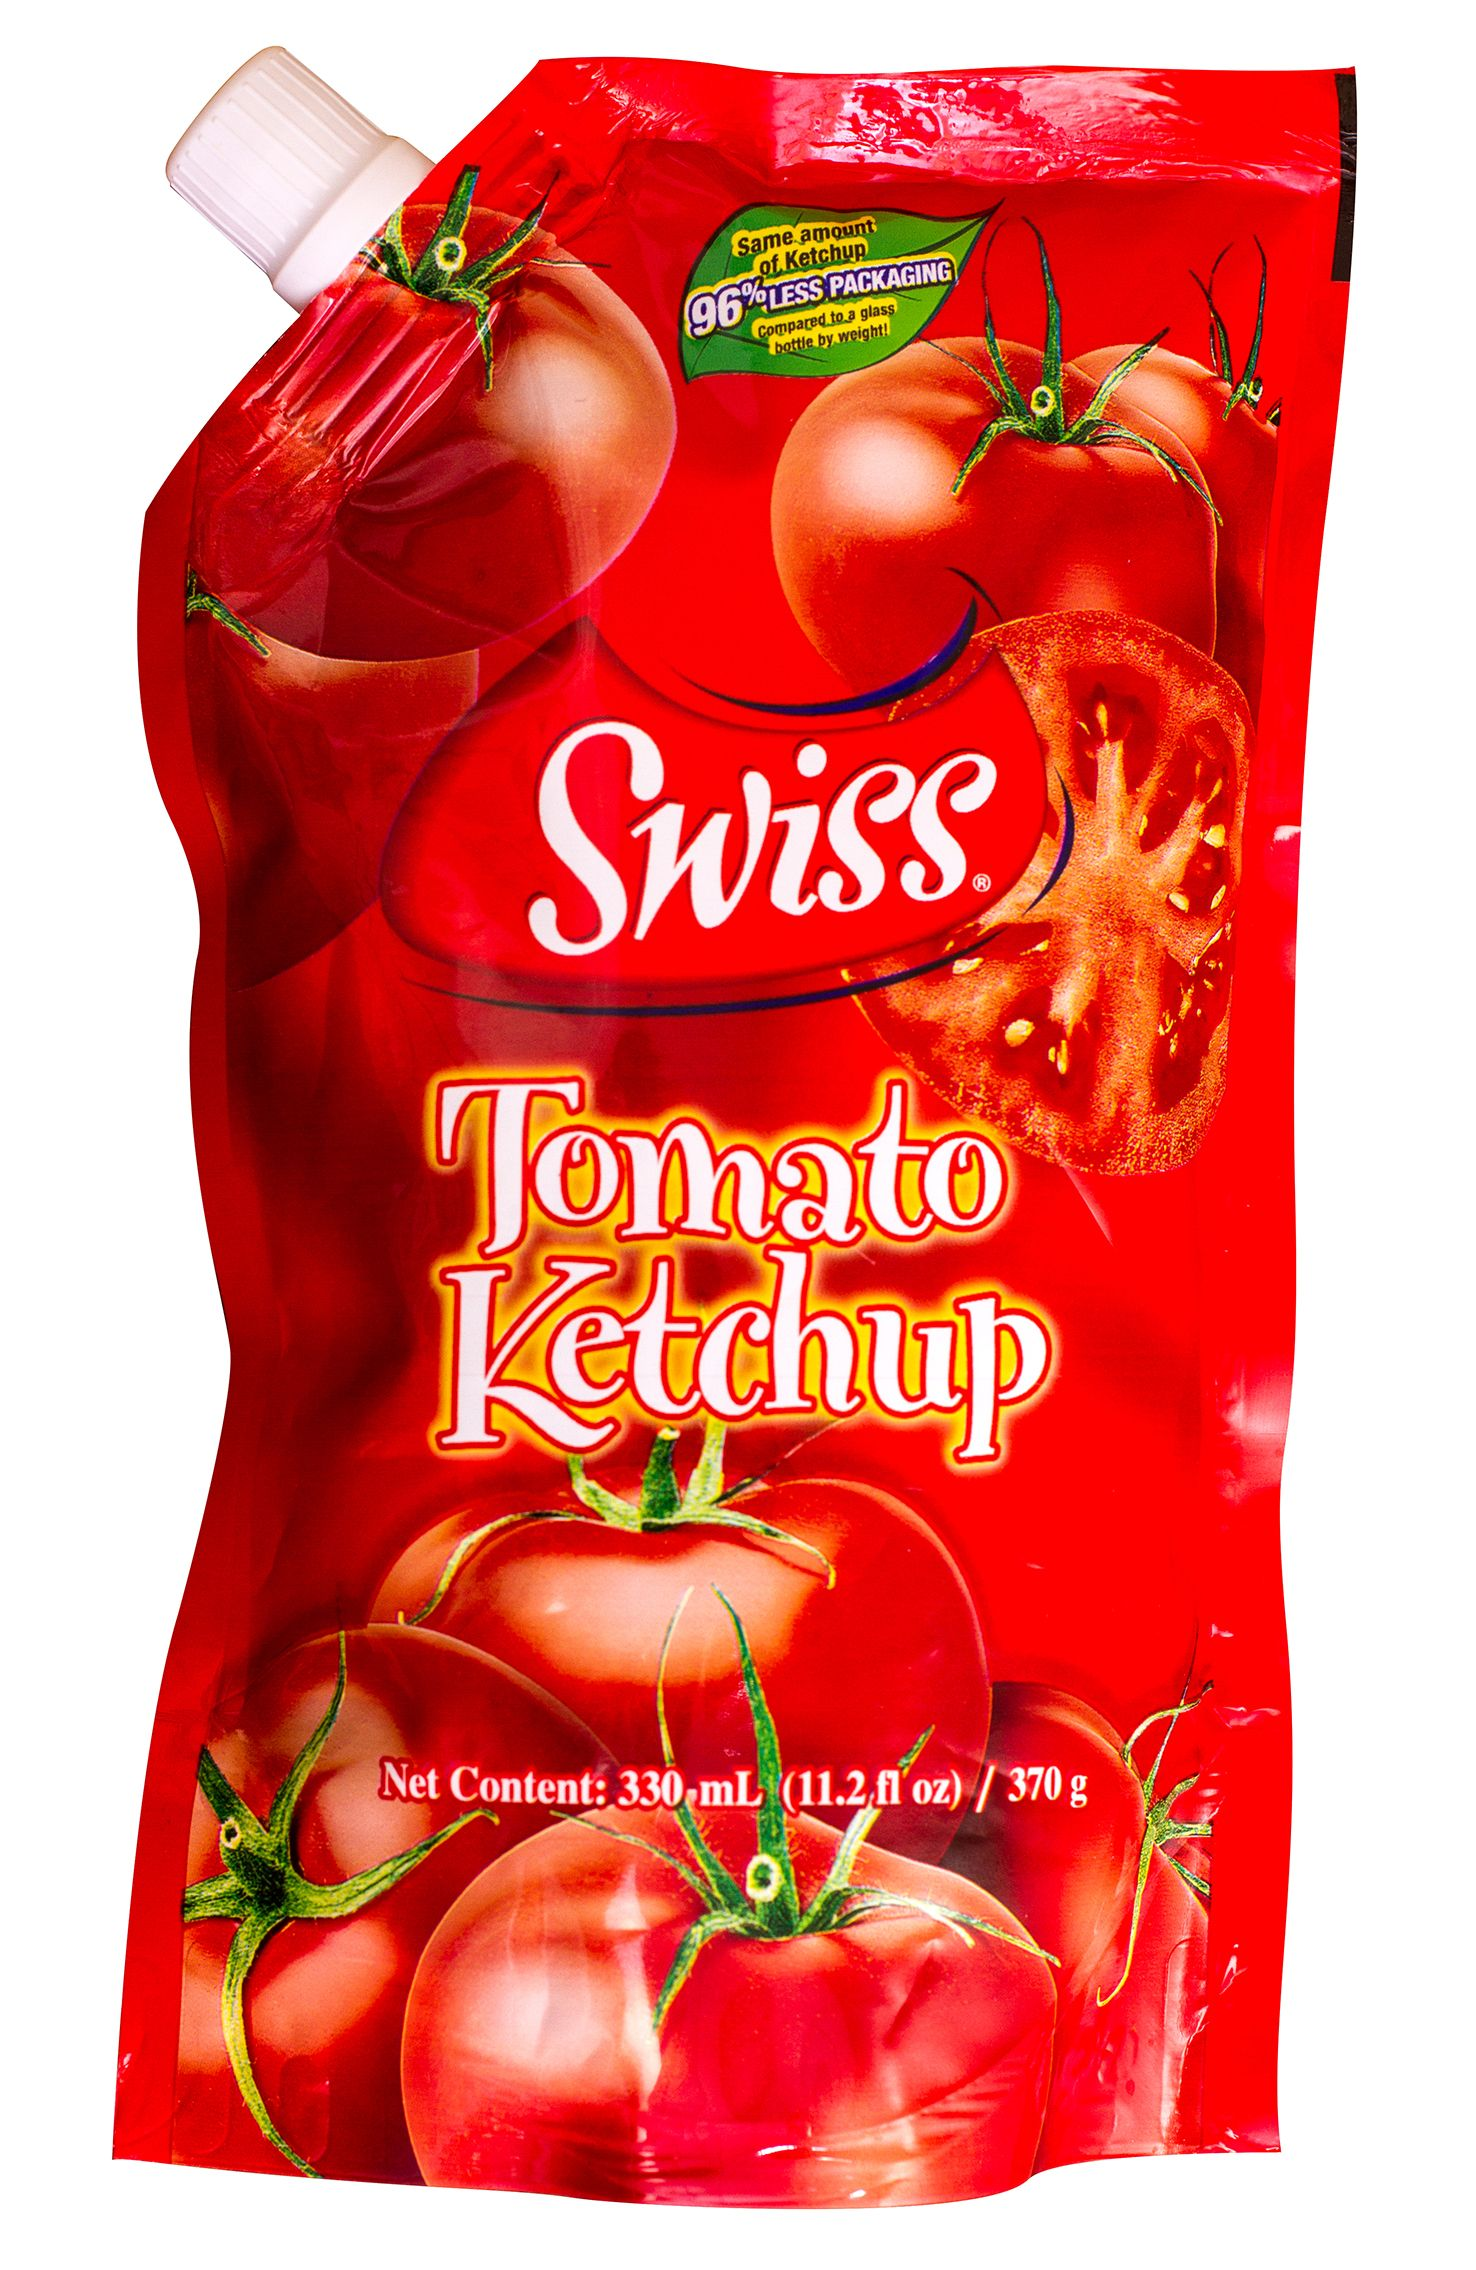 Swiss Brand Tomato Ketchup Packaging Design Trinidad Packaging Design Ketchup Tomato Ketchup